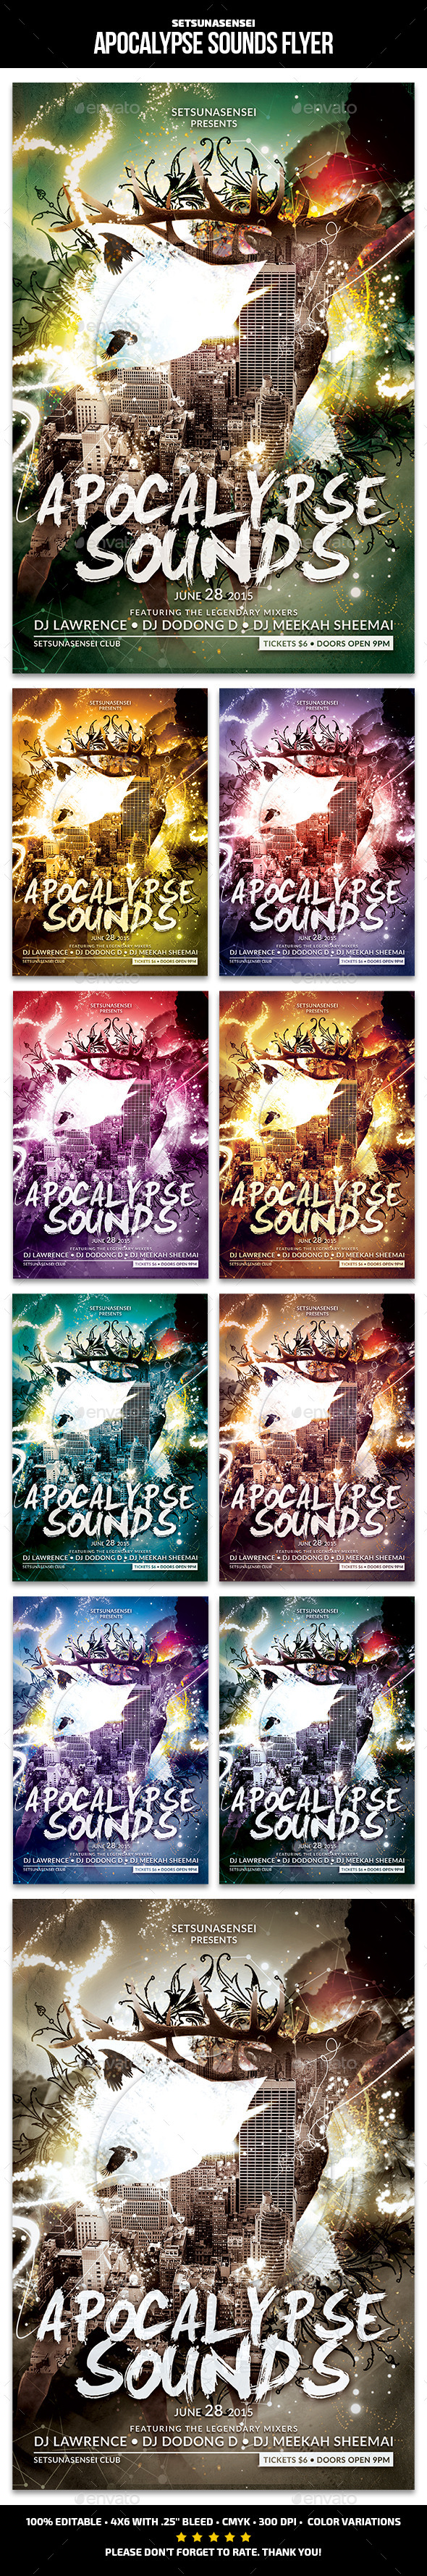 GraphicRiver Apocalypse Sounds Flyer 11386064